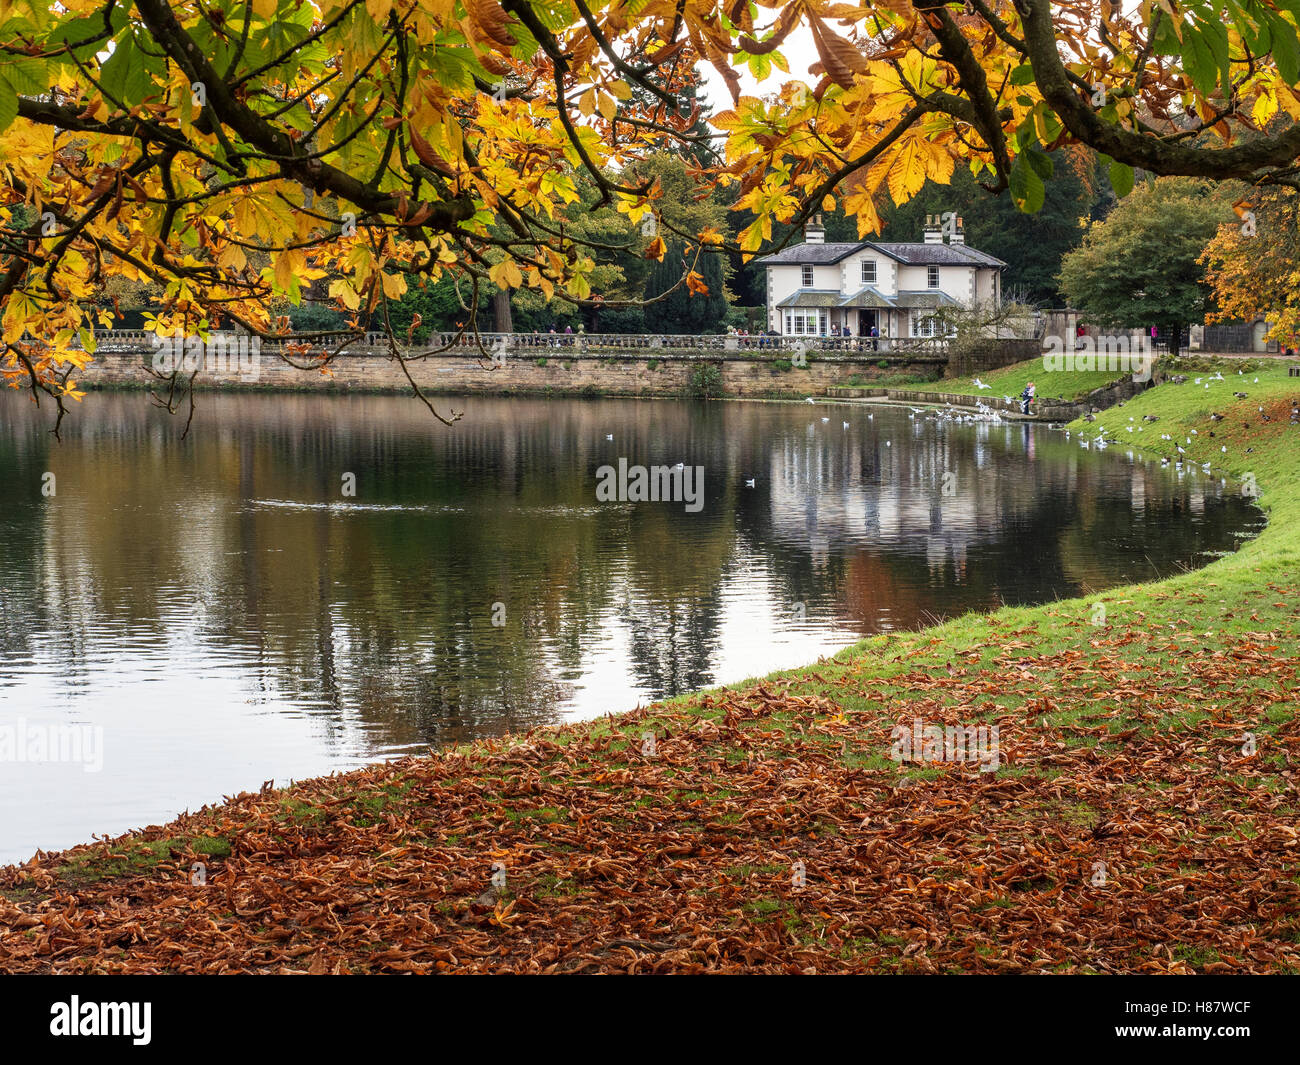 Tea Room by The Lake at Studely Royall Ripon Yorkshire England - Stock Image